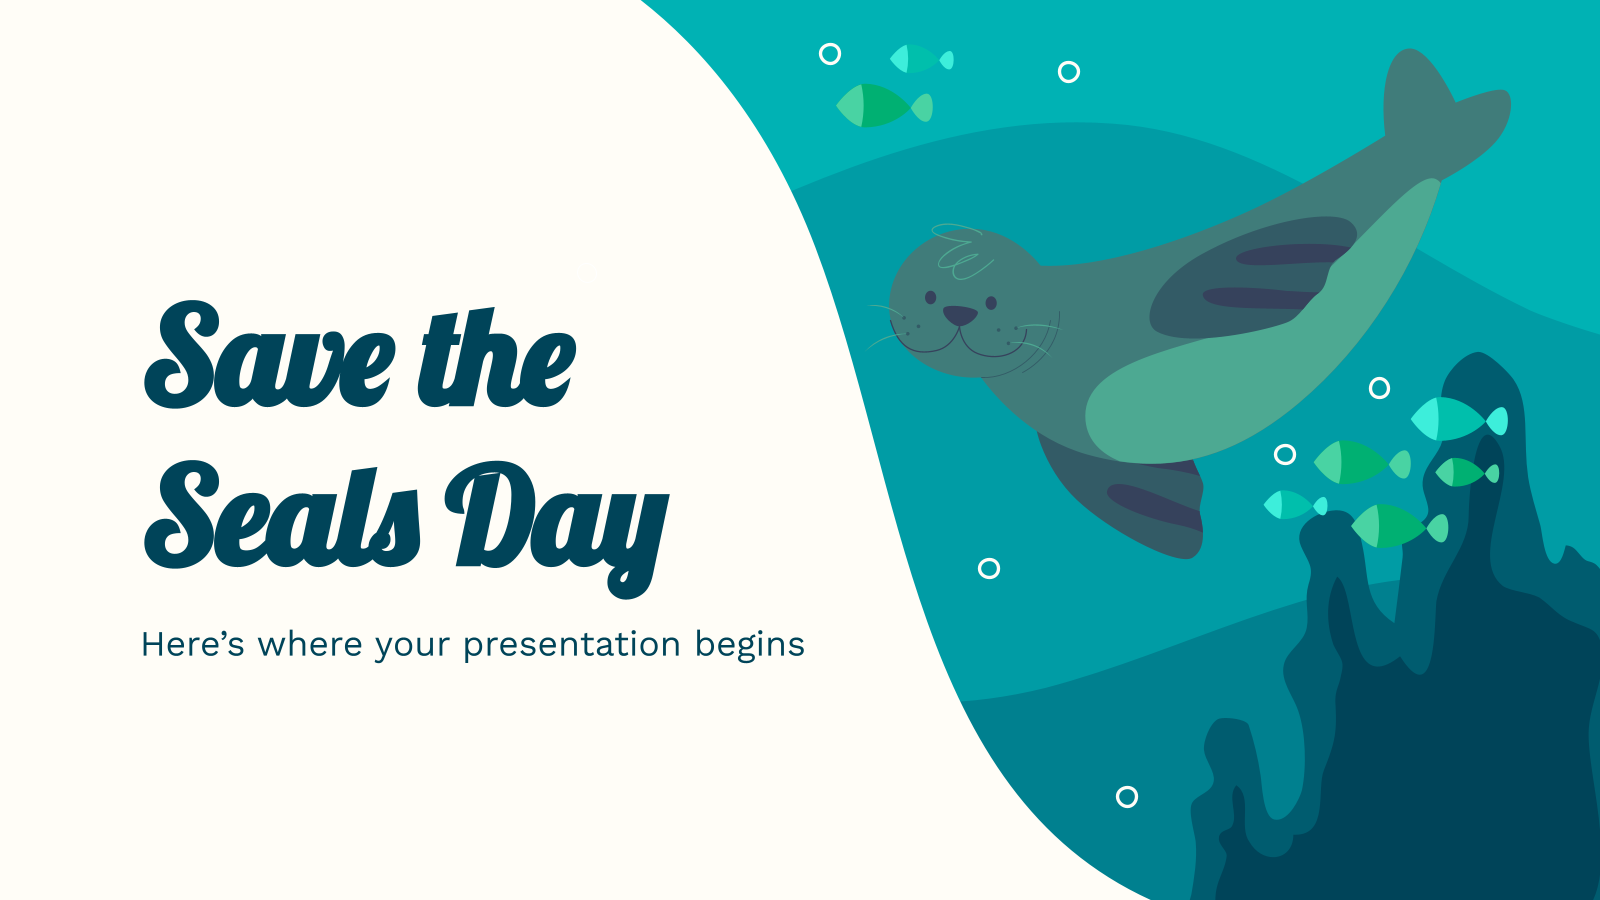 Save the Seals Day presentation template